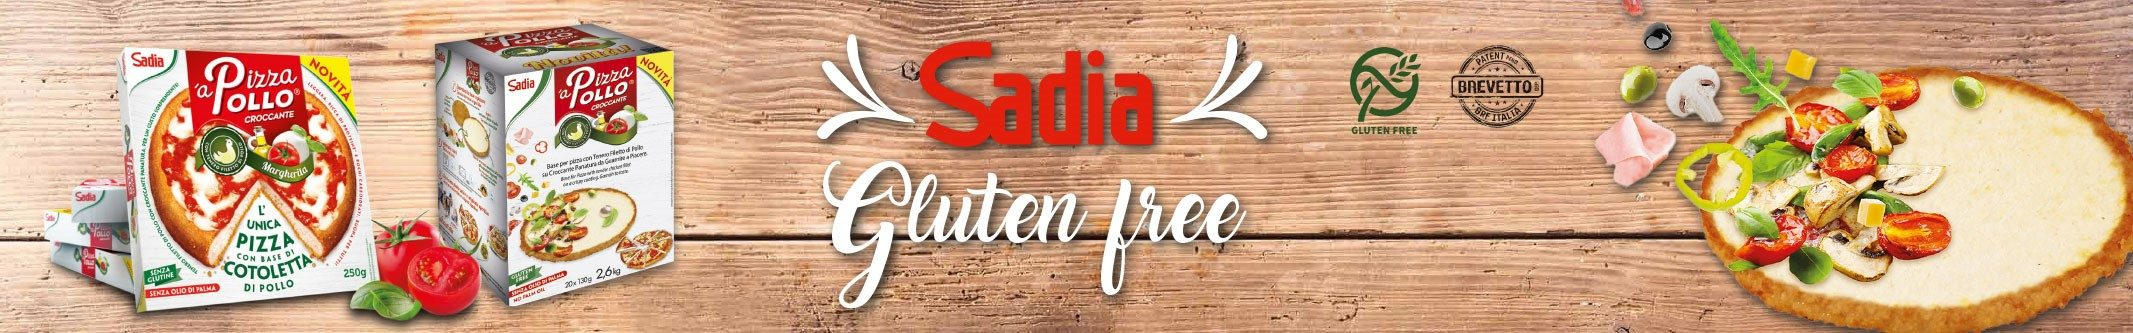 Sadia PIZZA POLLO foodservice